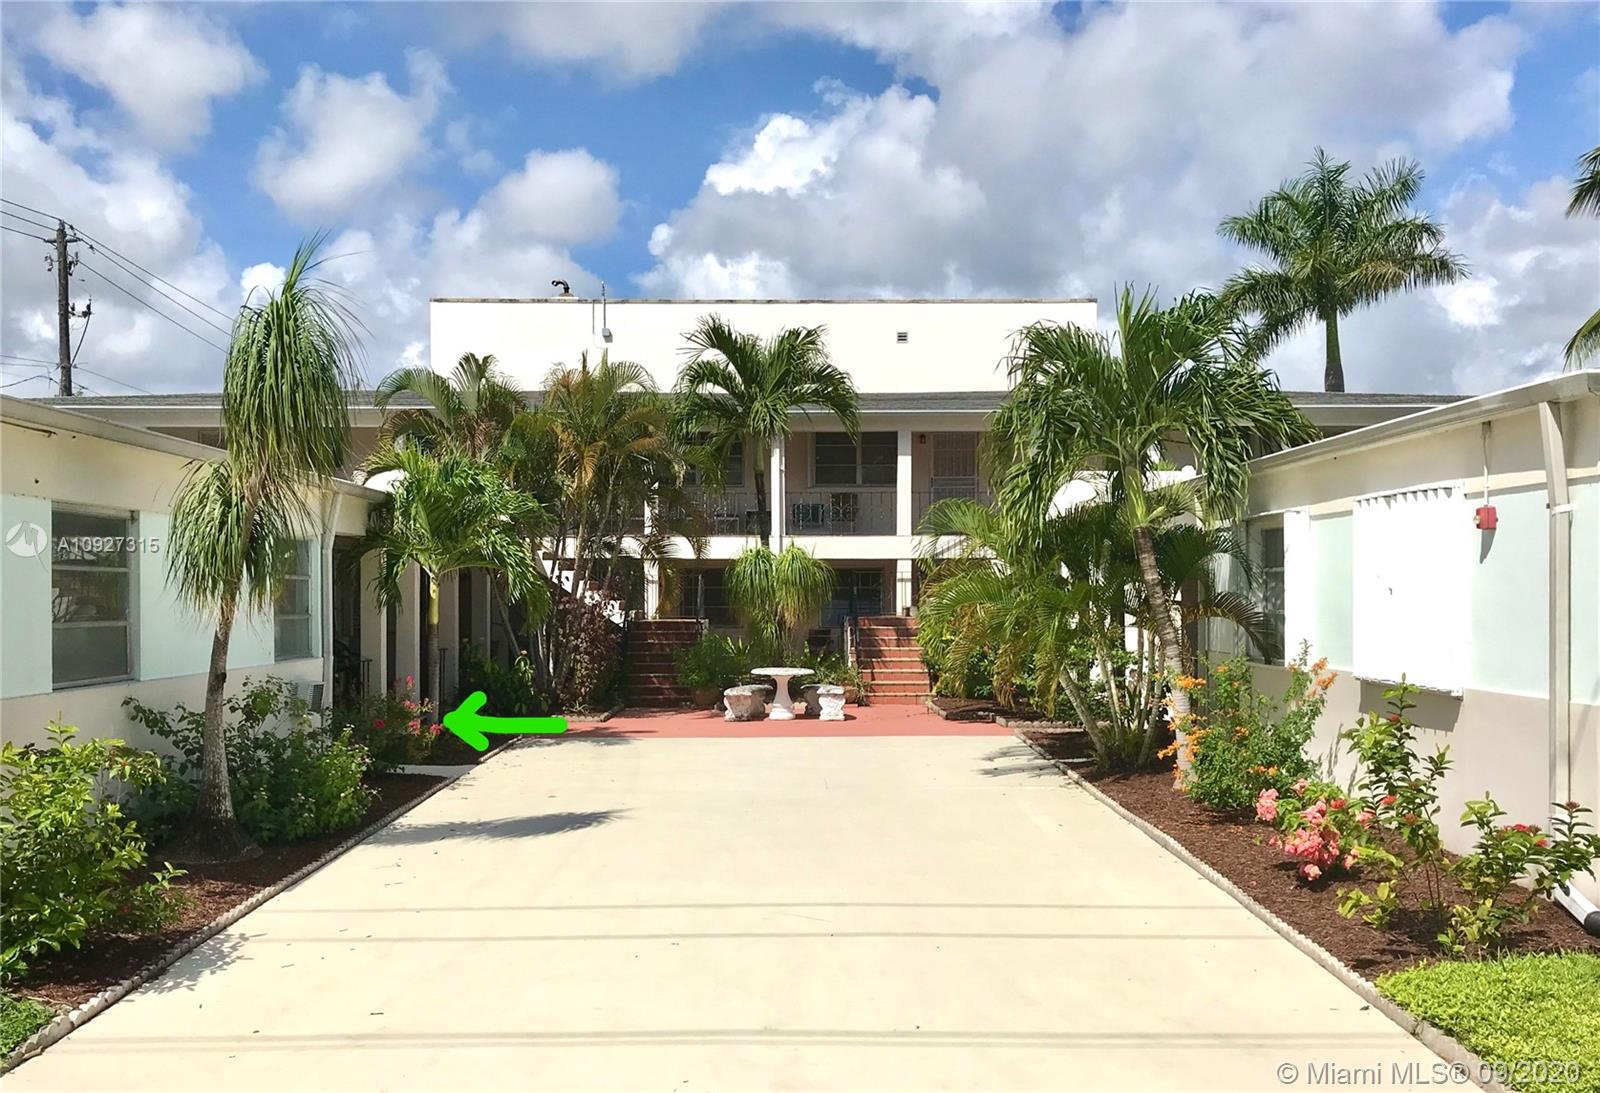 756 N 17th Ave #3 For Sale A10927315, FL